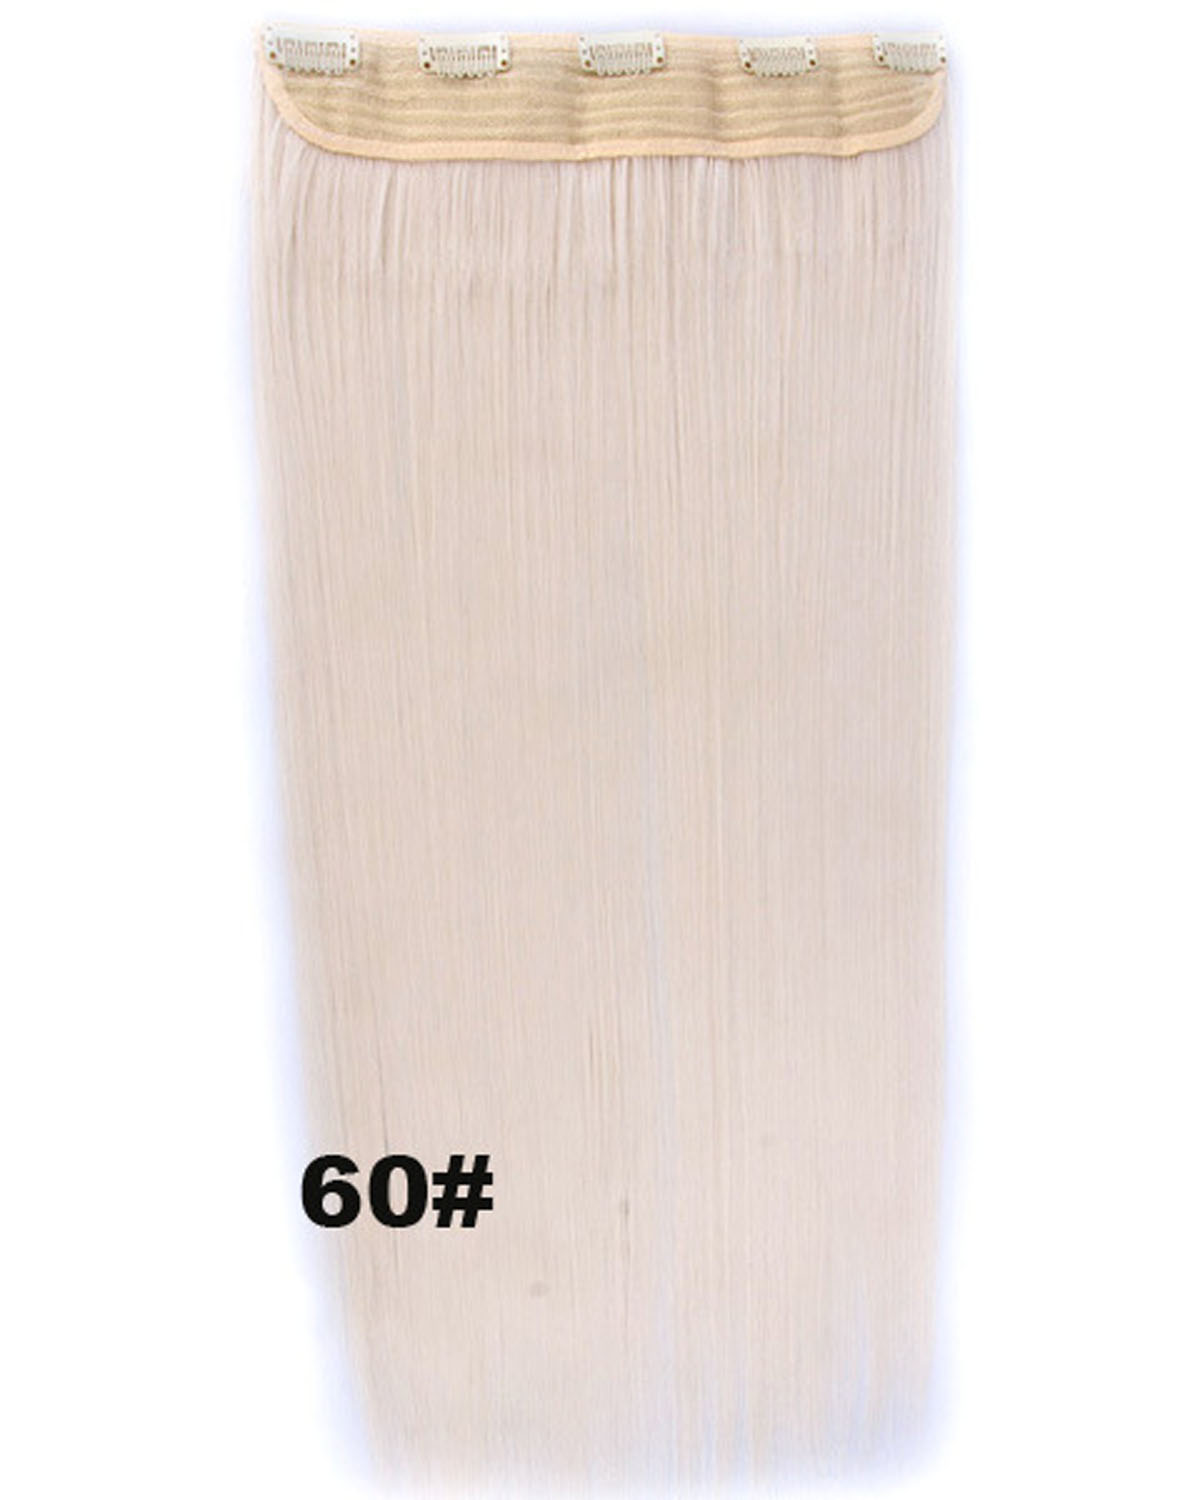 24 Inch Female Smooth and Long Straight One Piece 5 Clips Clip in Synthetic Hair Extension  60#